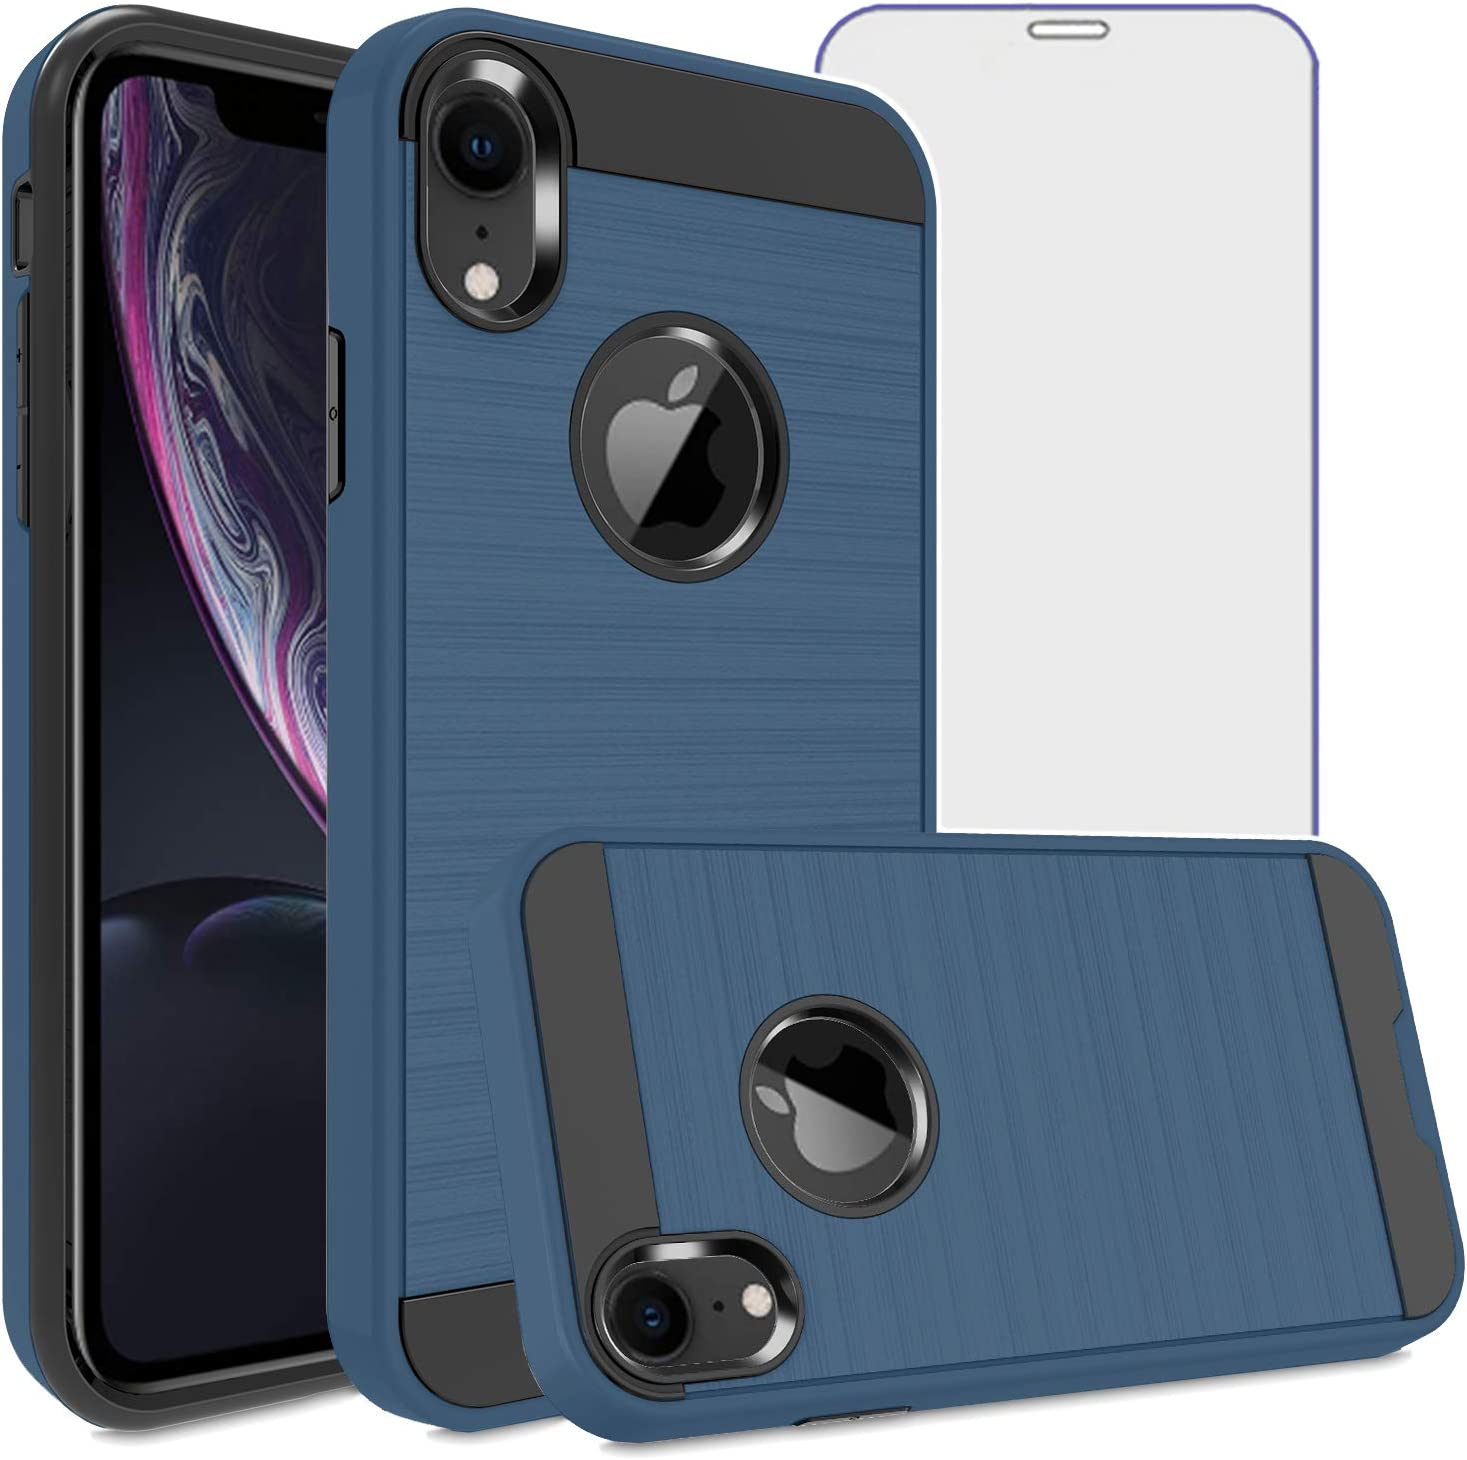 Asuwish Compatible with iPhone XR Case Tempered Glass Screen Protector Cover Grip Slim Hard Shockproof Protective Cell Phone for iPhoneXR iPhone10R i Phonex 10XR 10R 10 R RX CR iPhoneXRcases Navy